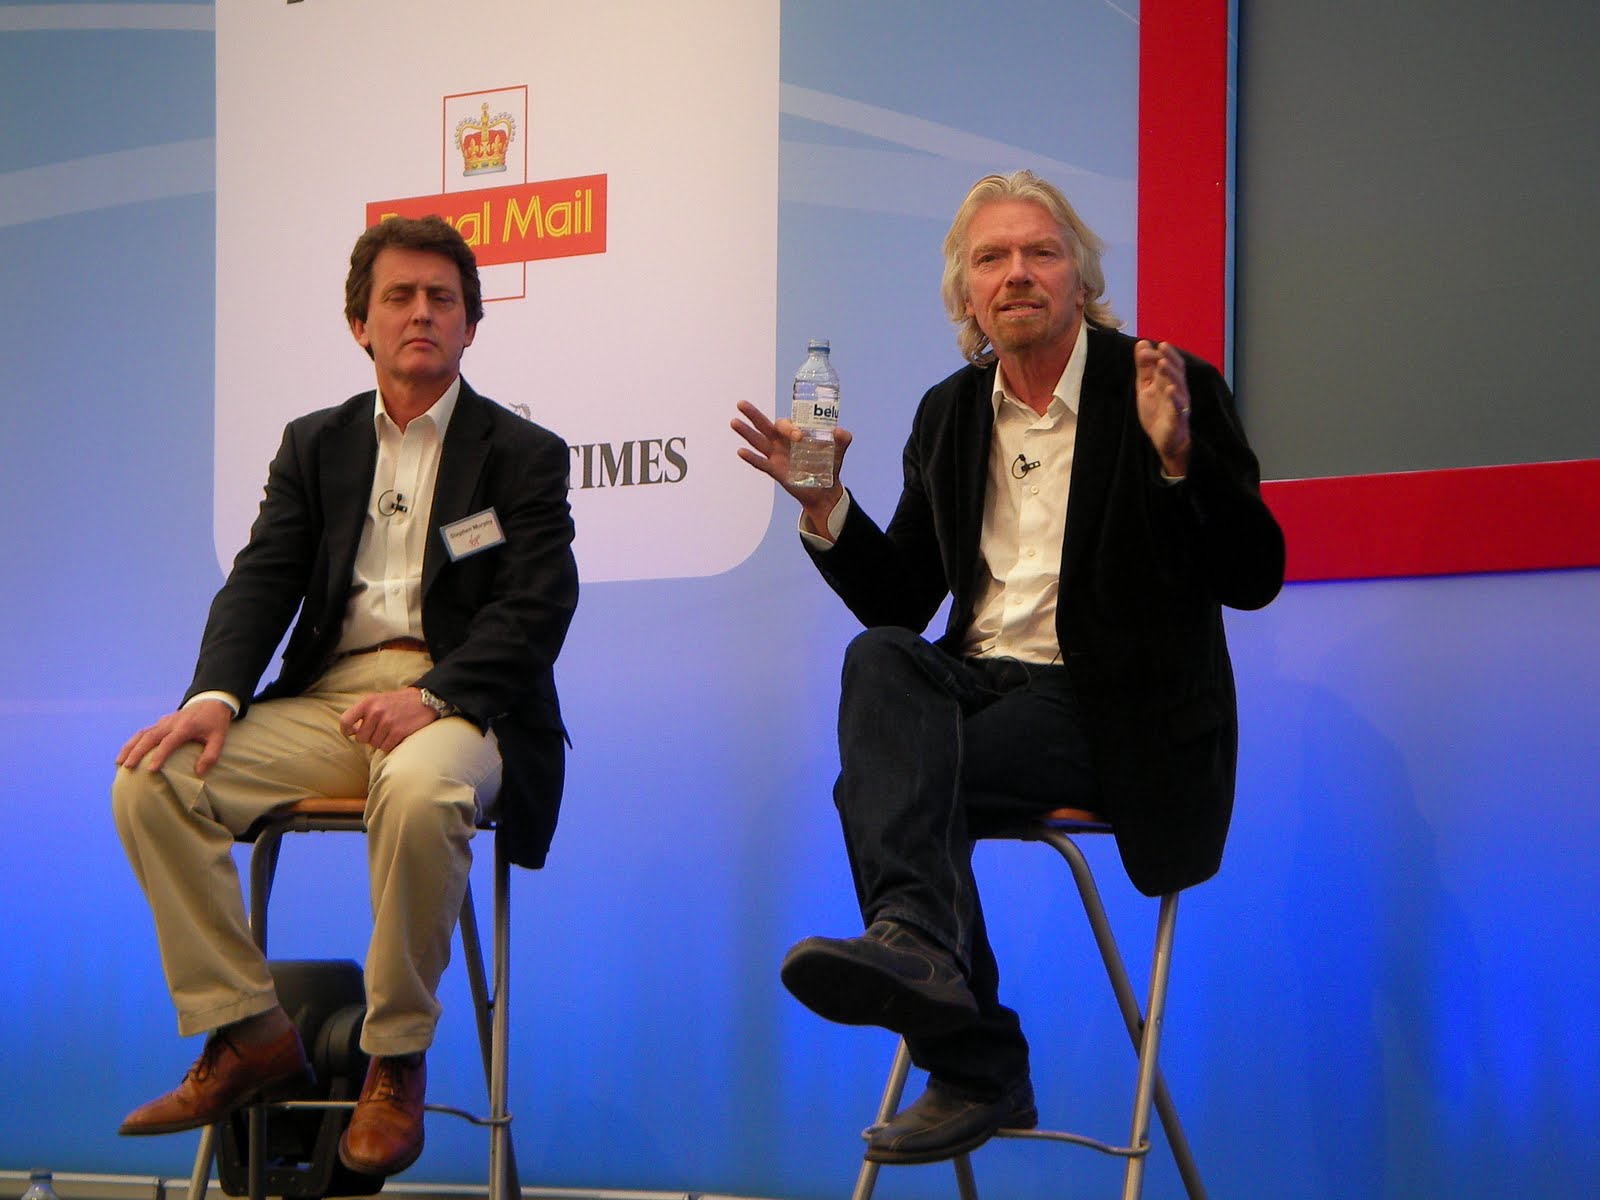 Stephen Murphy & Richard Branson answering questions